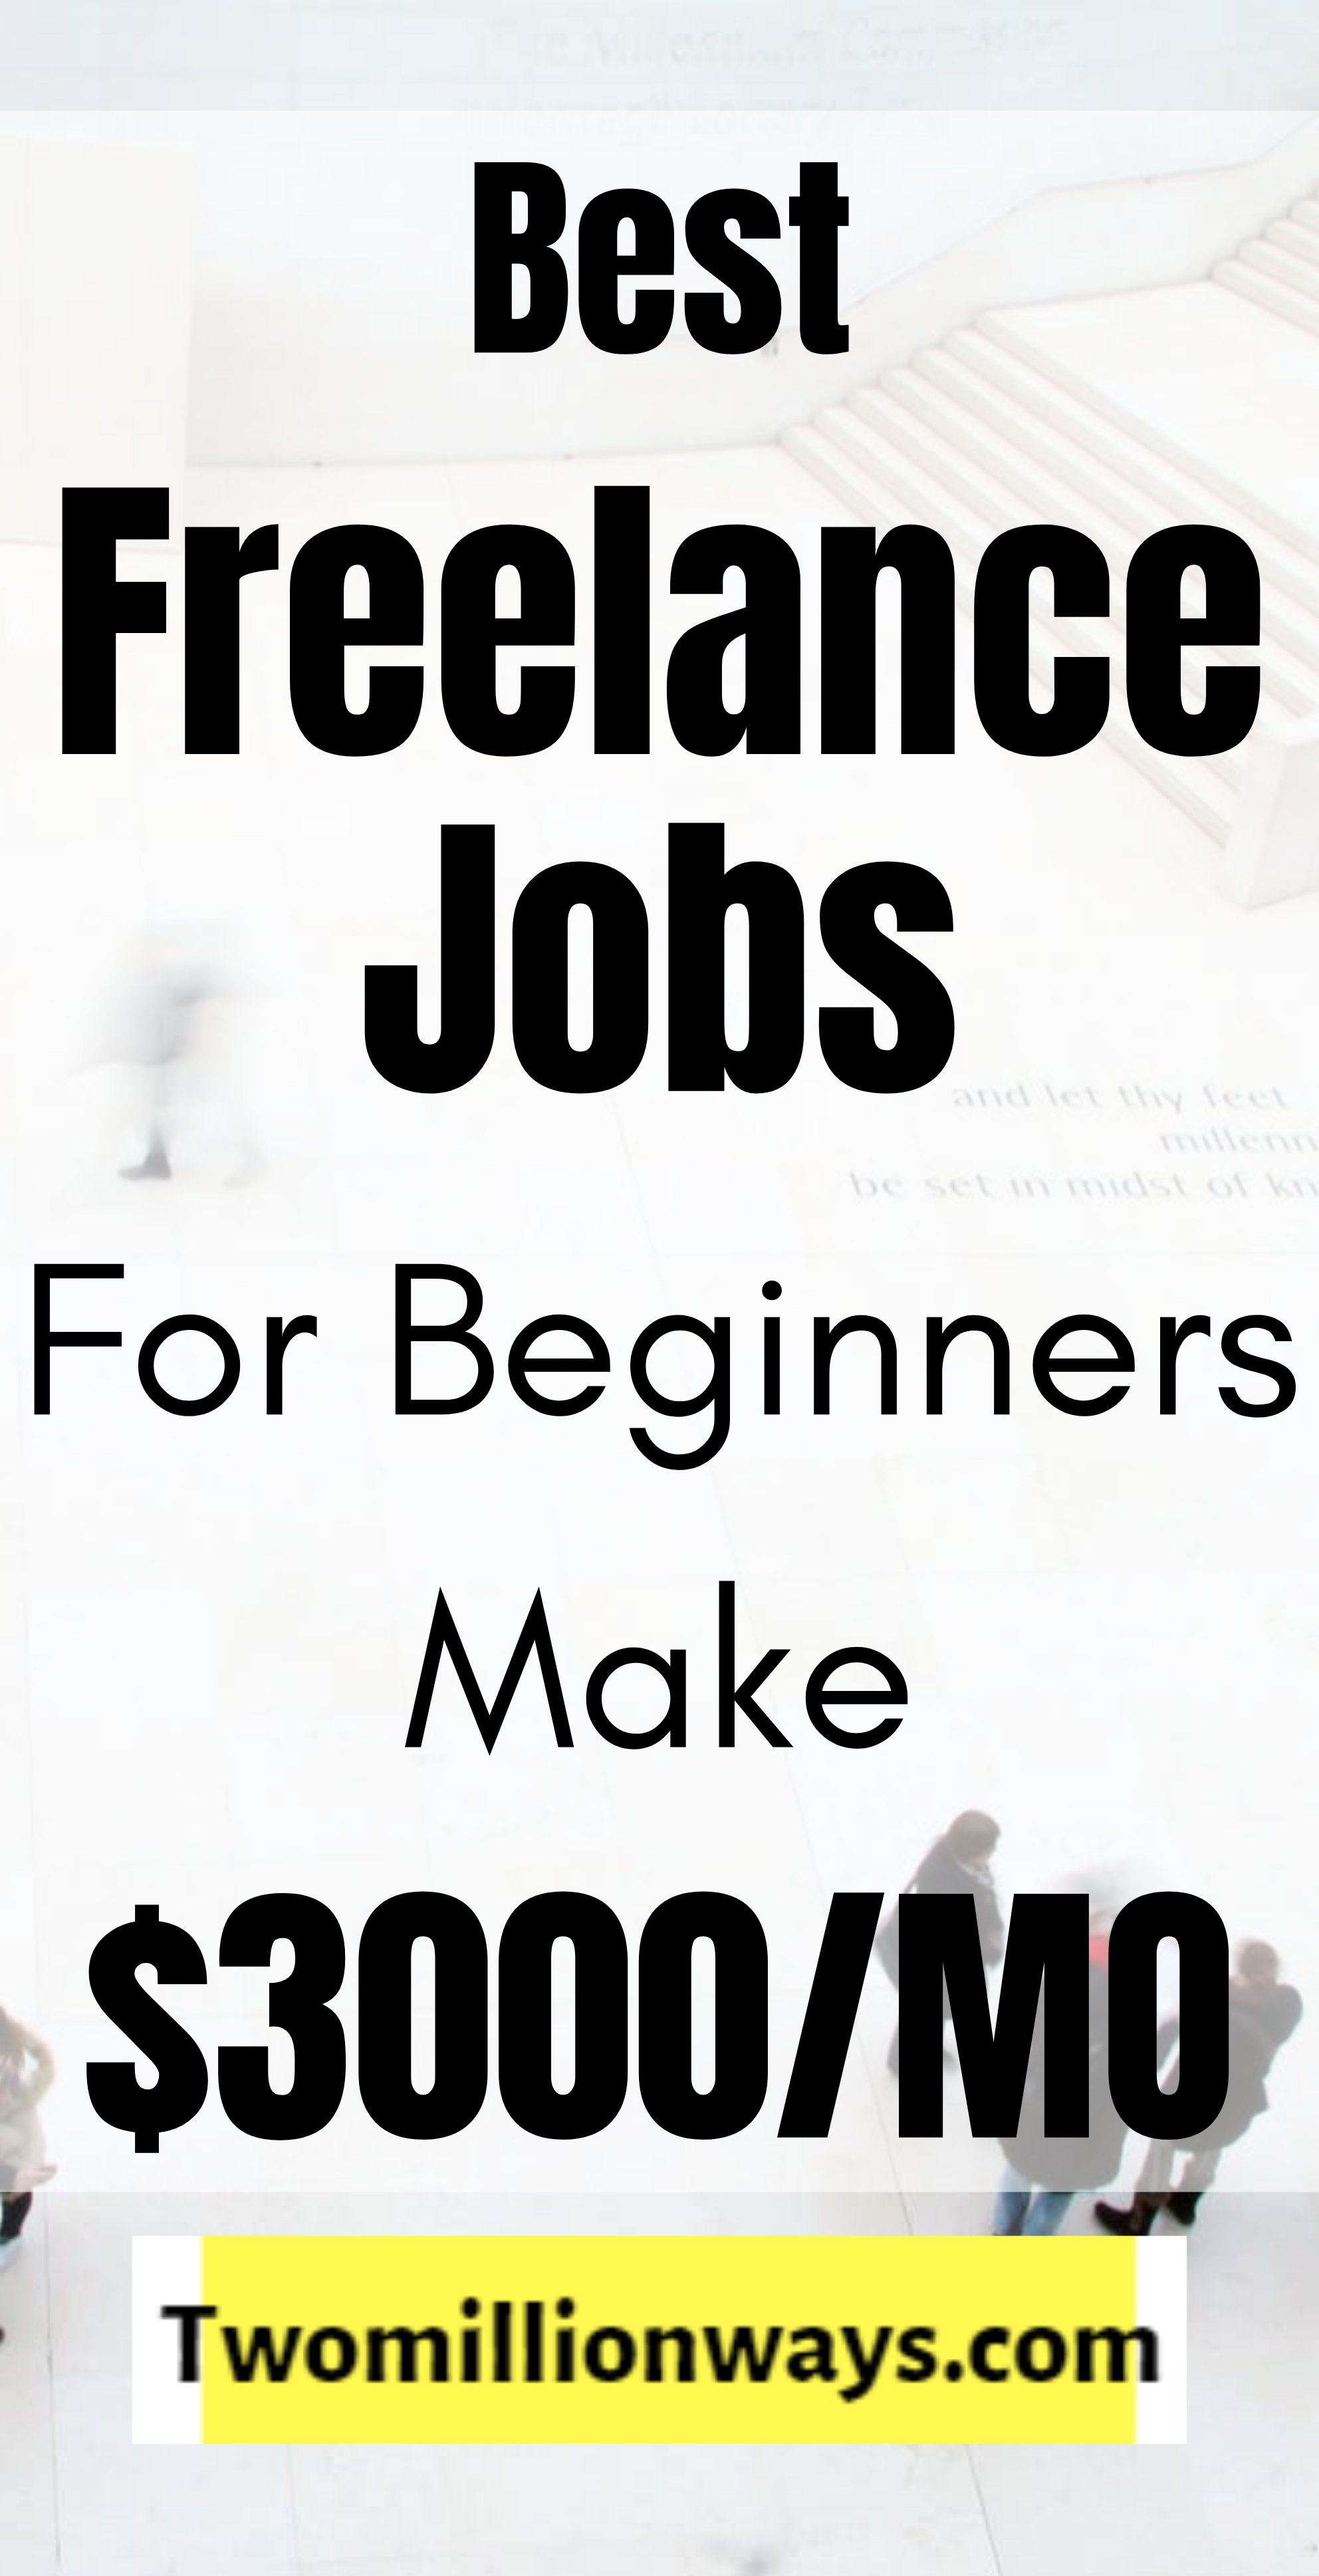 A Few People Also Would Like To Find Freelance Work From Home Jobs To Make Ends Meet For A Few It Would Part Time Freelancing Jobs Finding Freelance Work Job